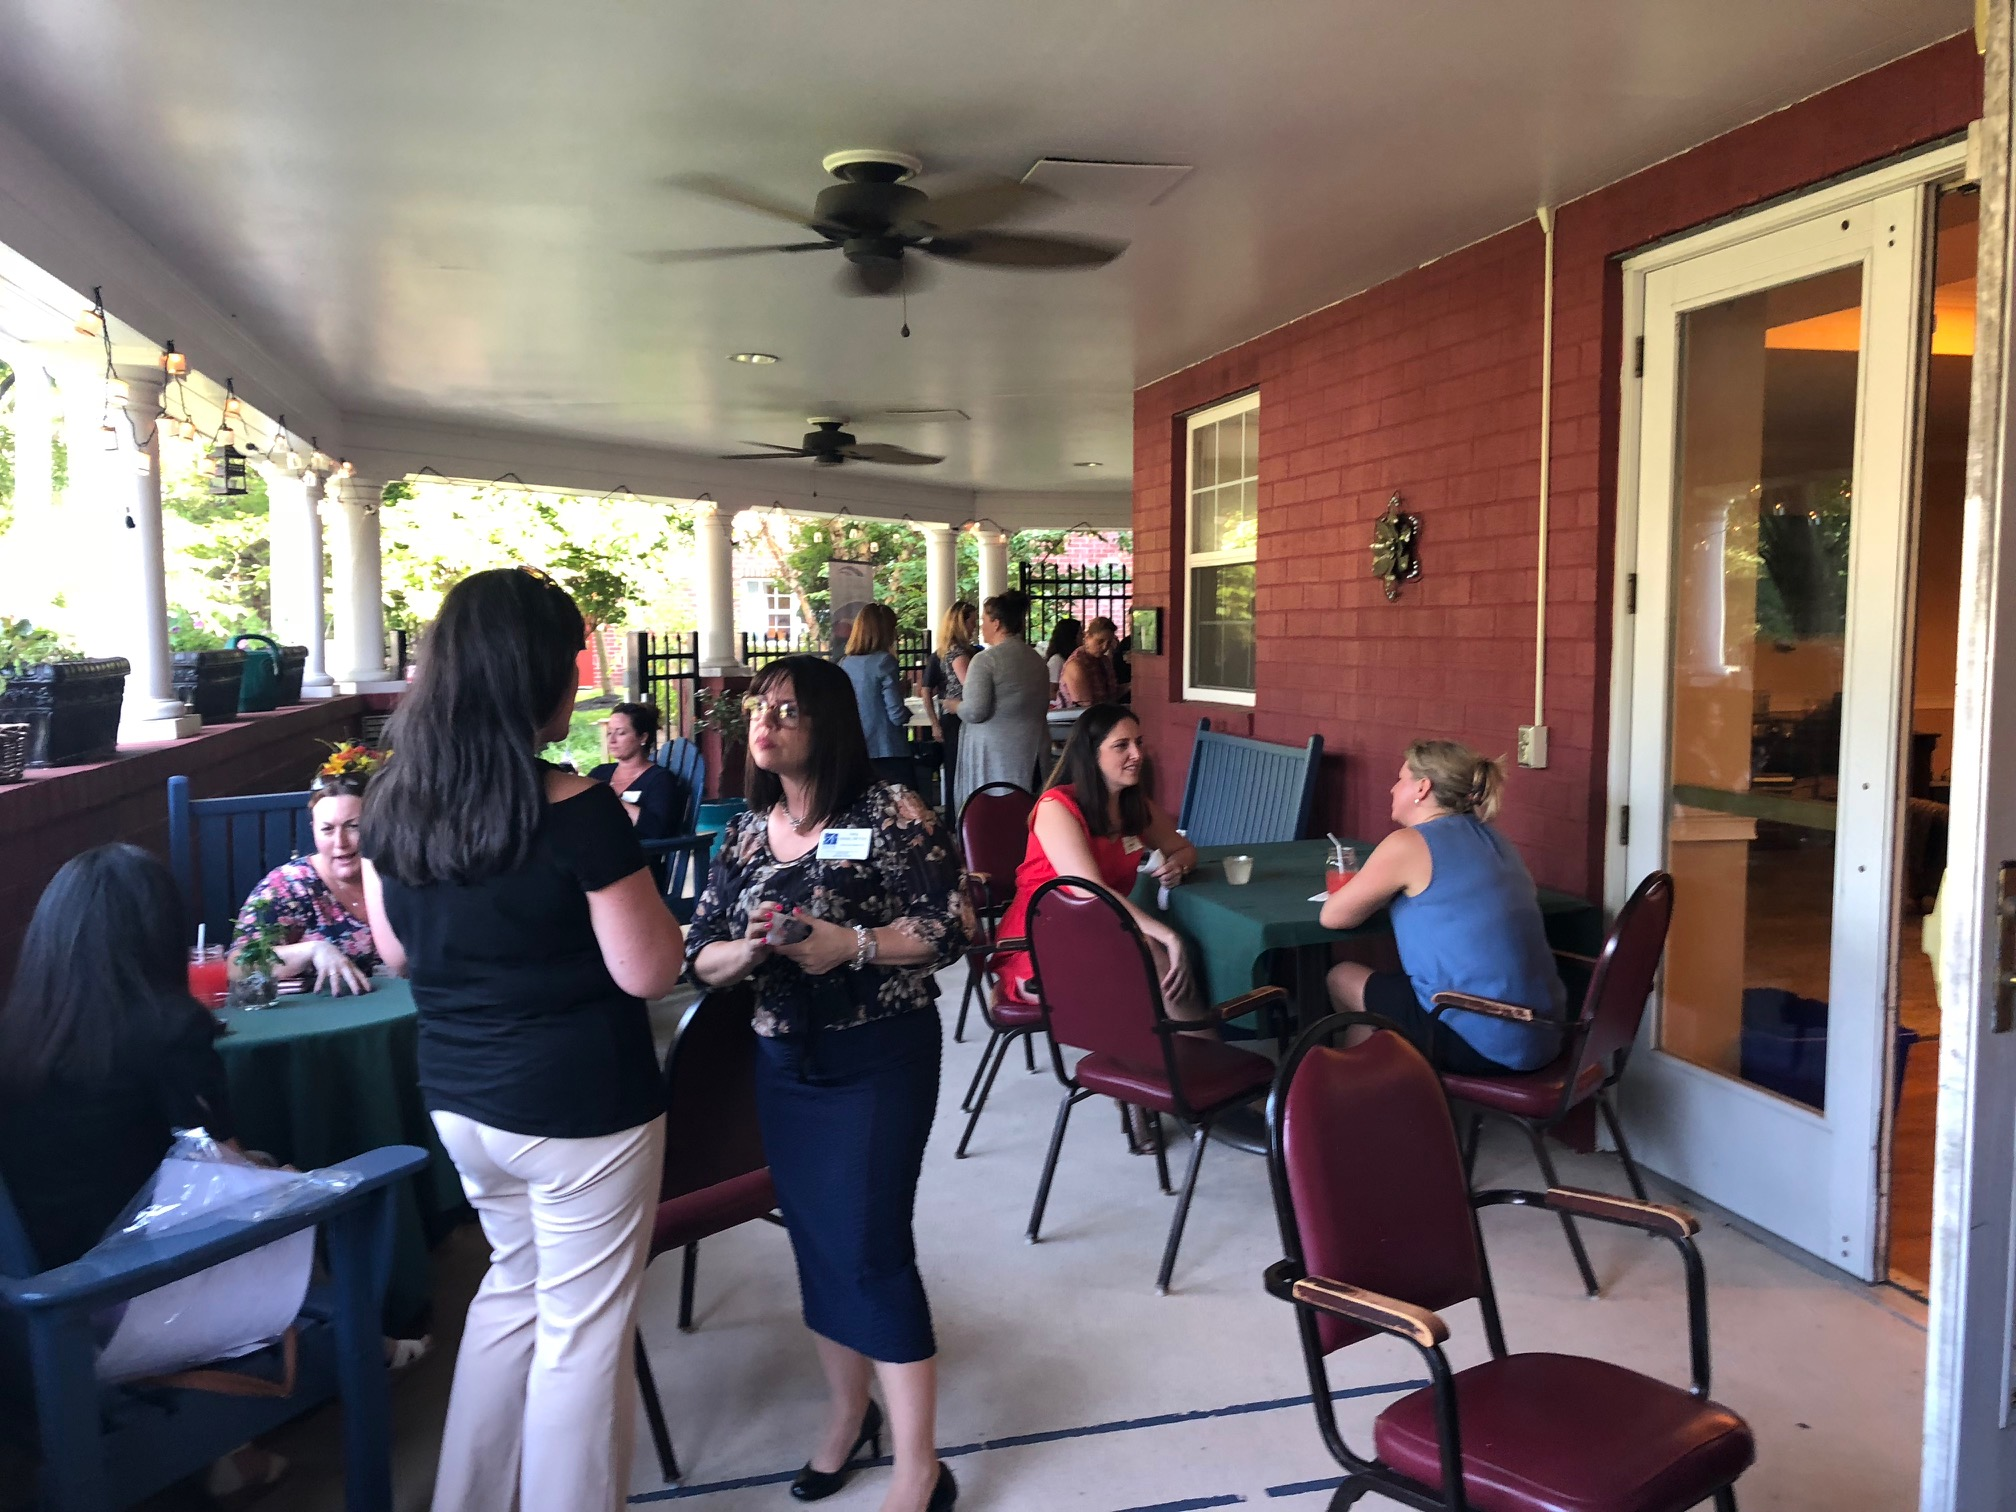 Five Star Senior Living Hosts Networking Event to Showcase Its Lifestyle360 Program